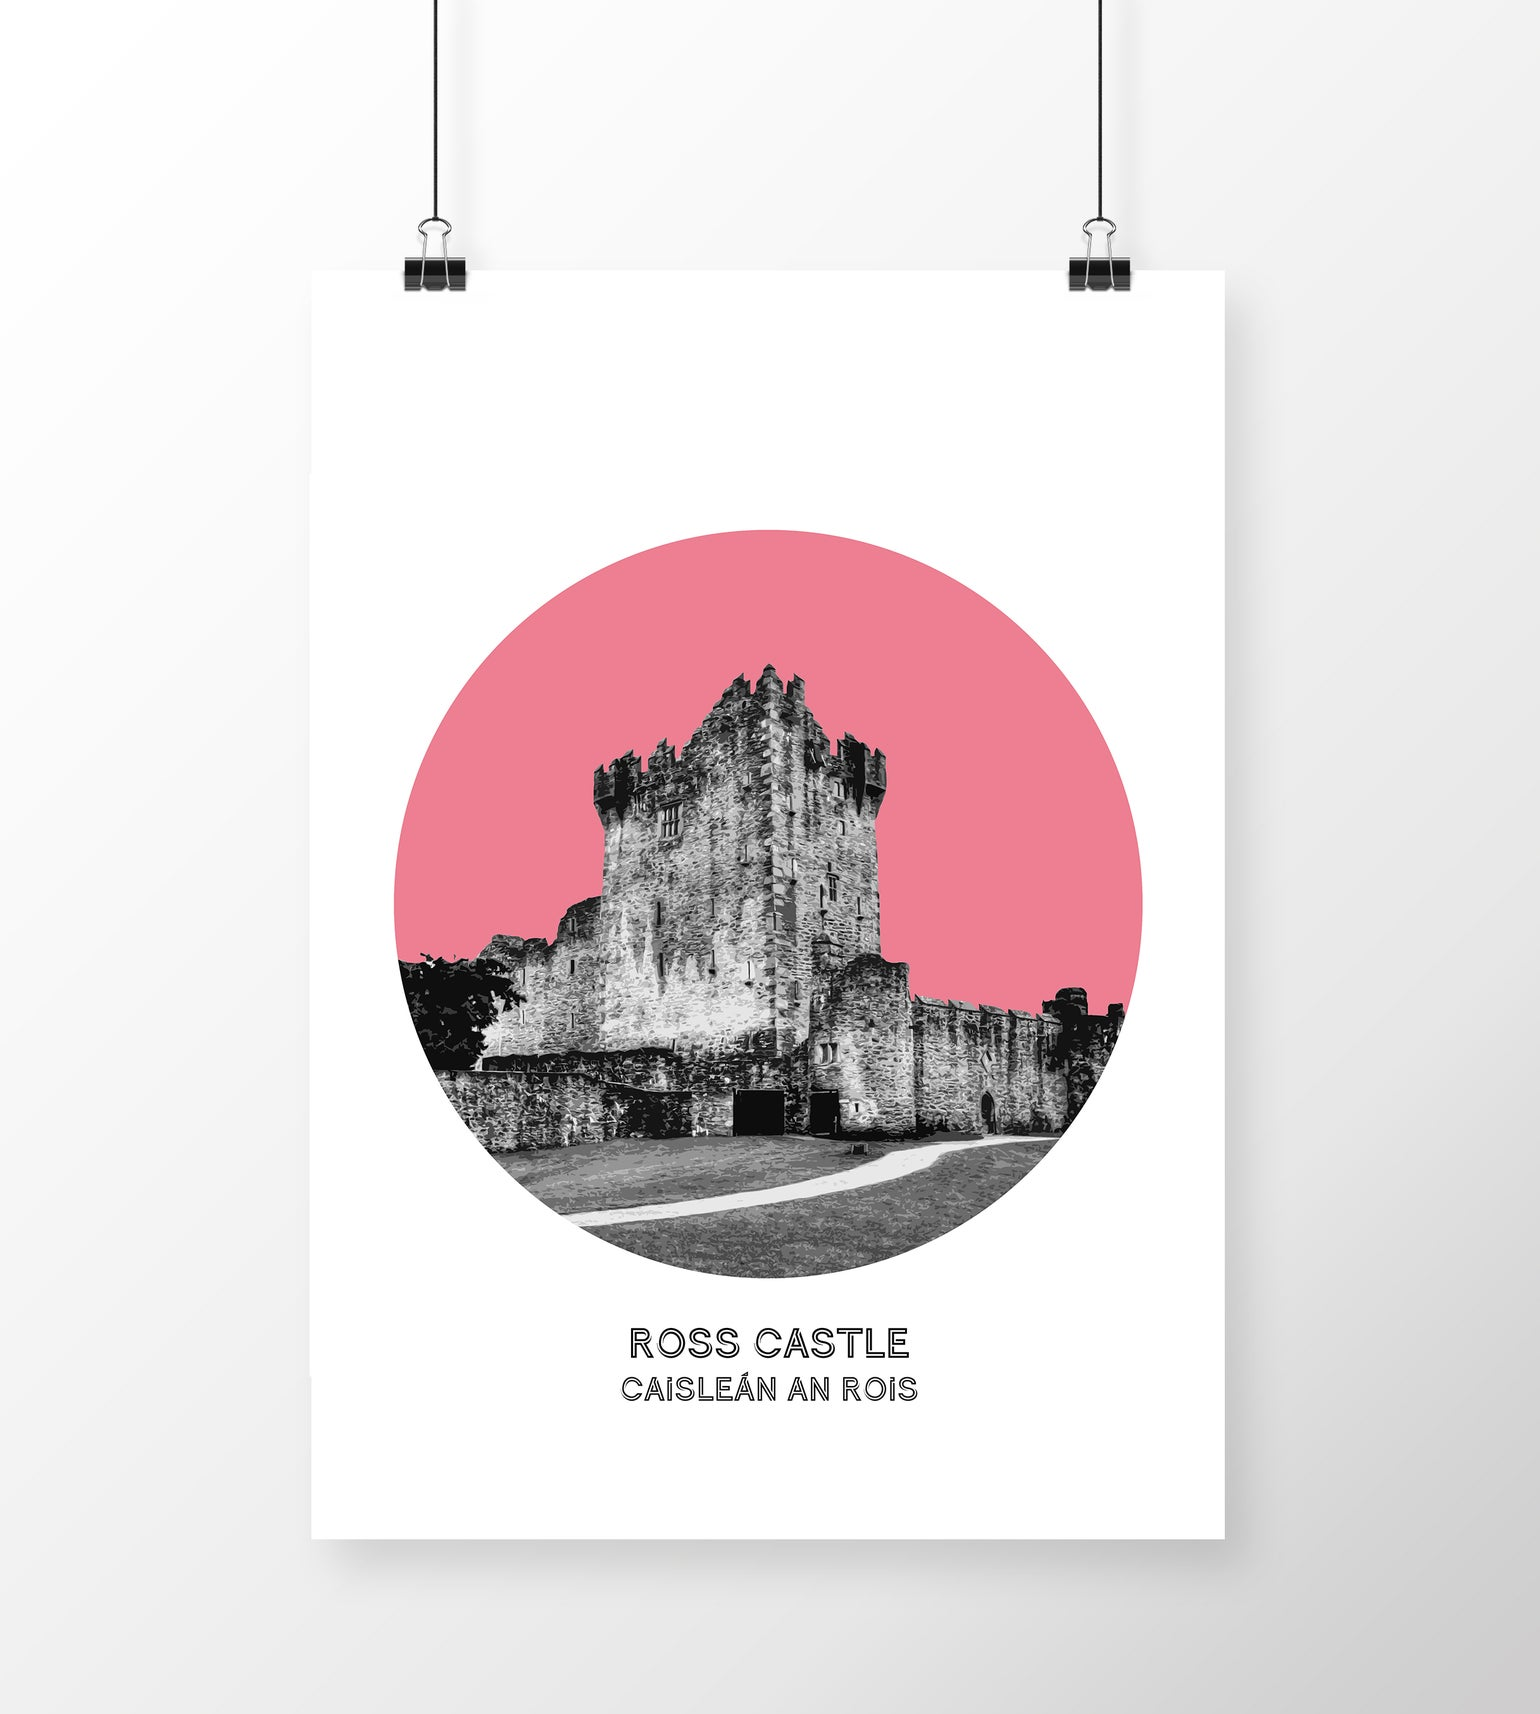 Image of Ross Castle, Killarney National Park